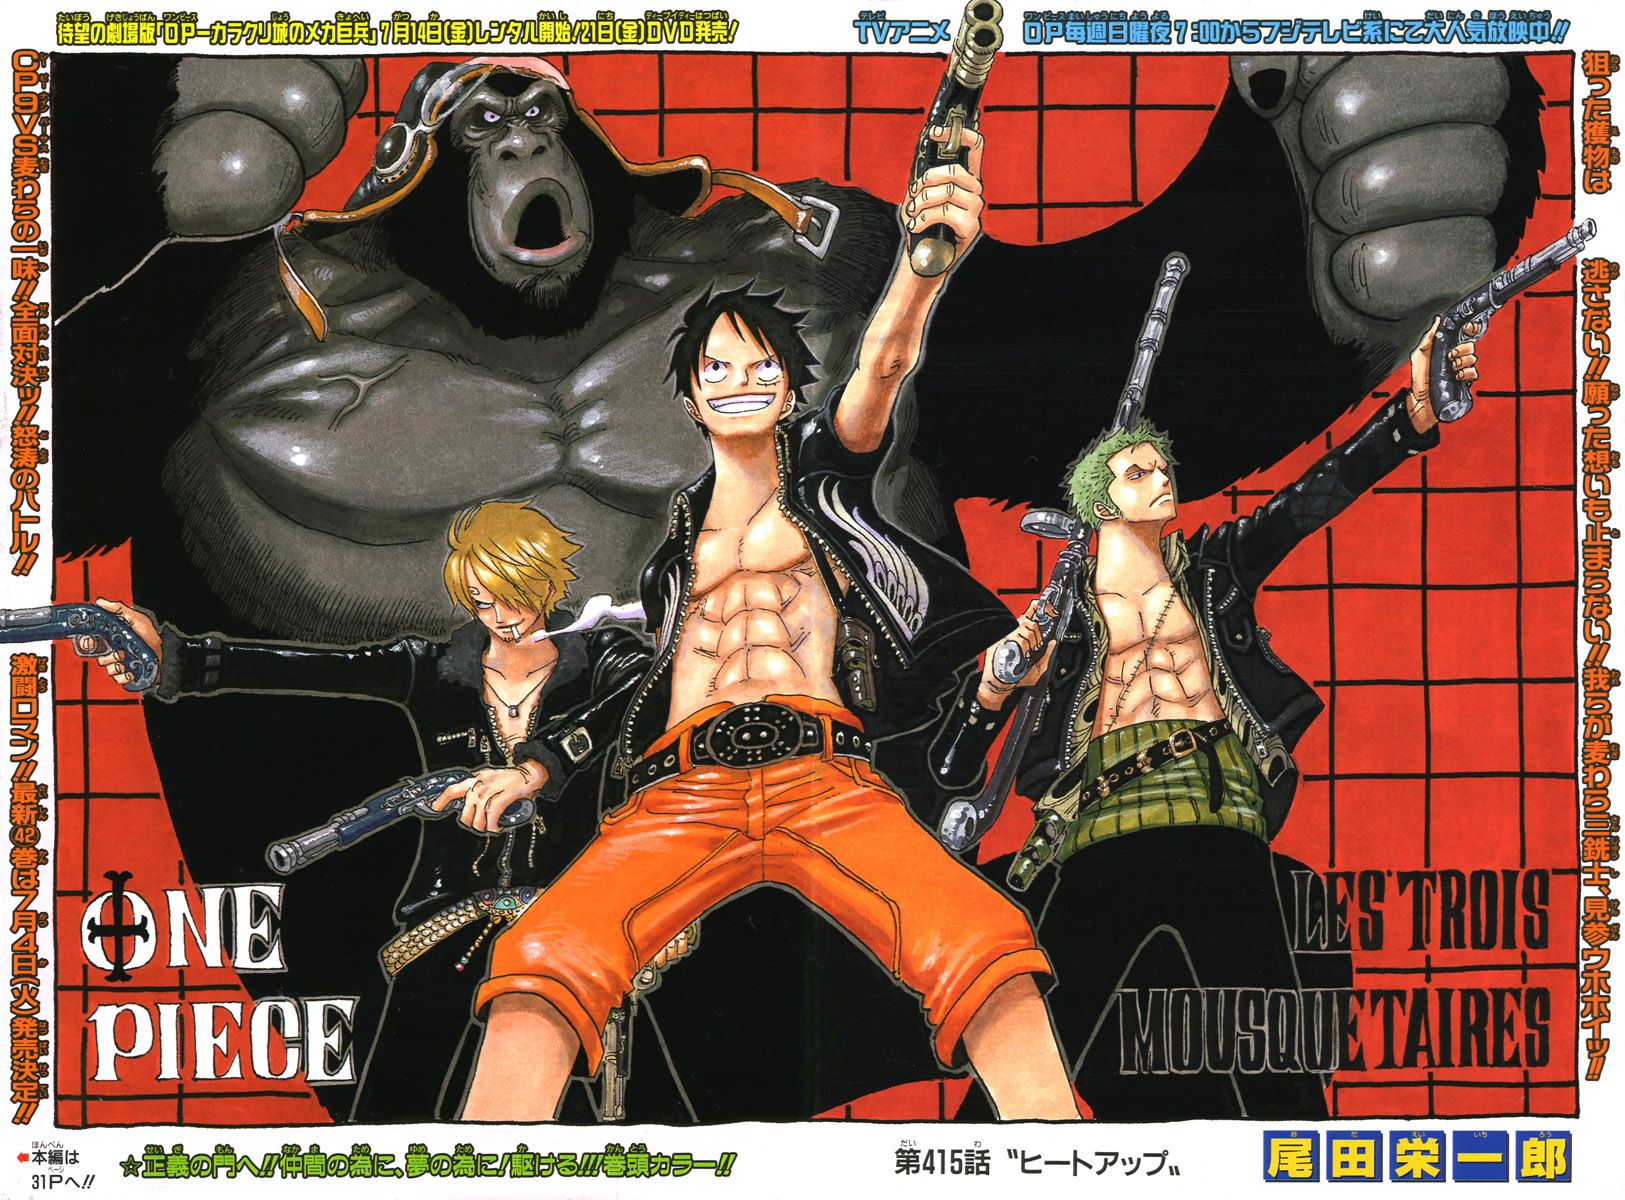 đọc Truyện Scan Onepiece Collection Chap 3 Tv Tren Di động Hoặc Tren Mobile Smartphone Iphone Tại đay One Piece Images One Piece Chapter One Piece Manga